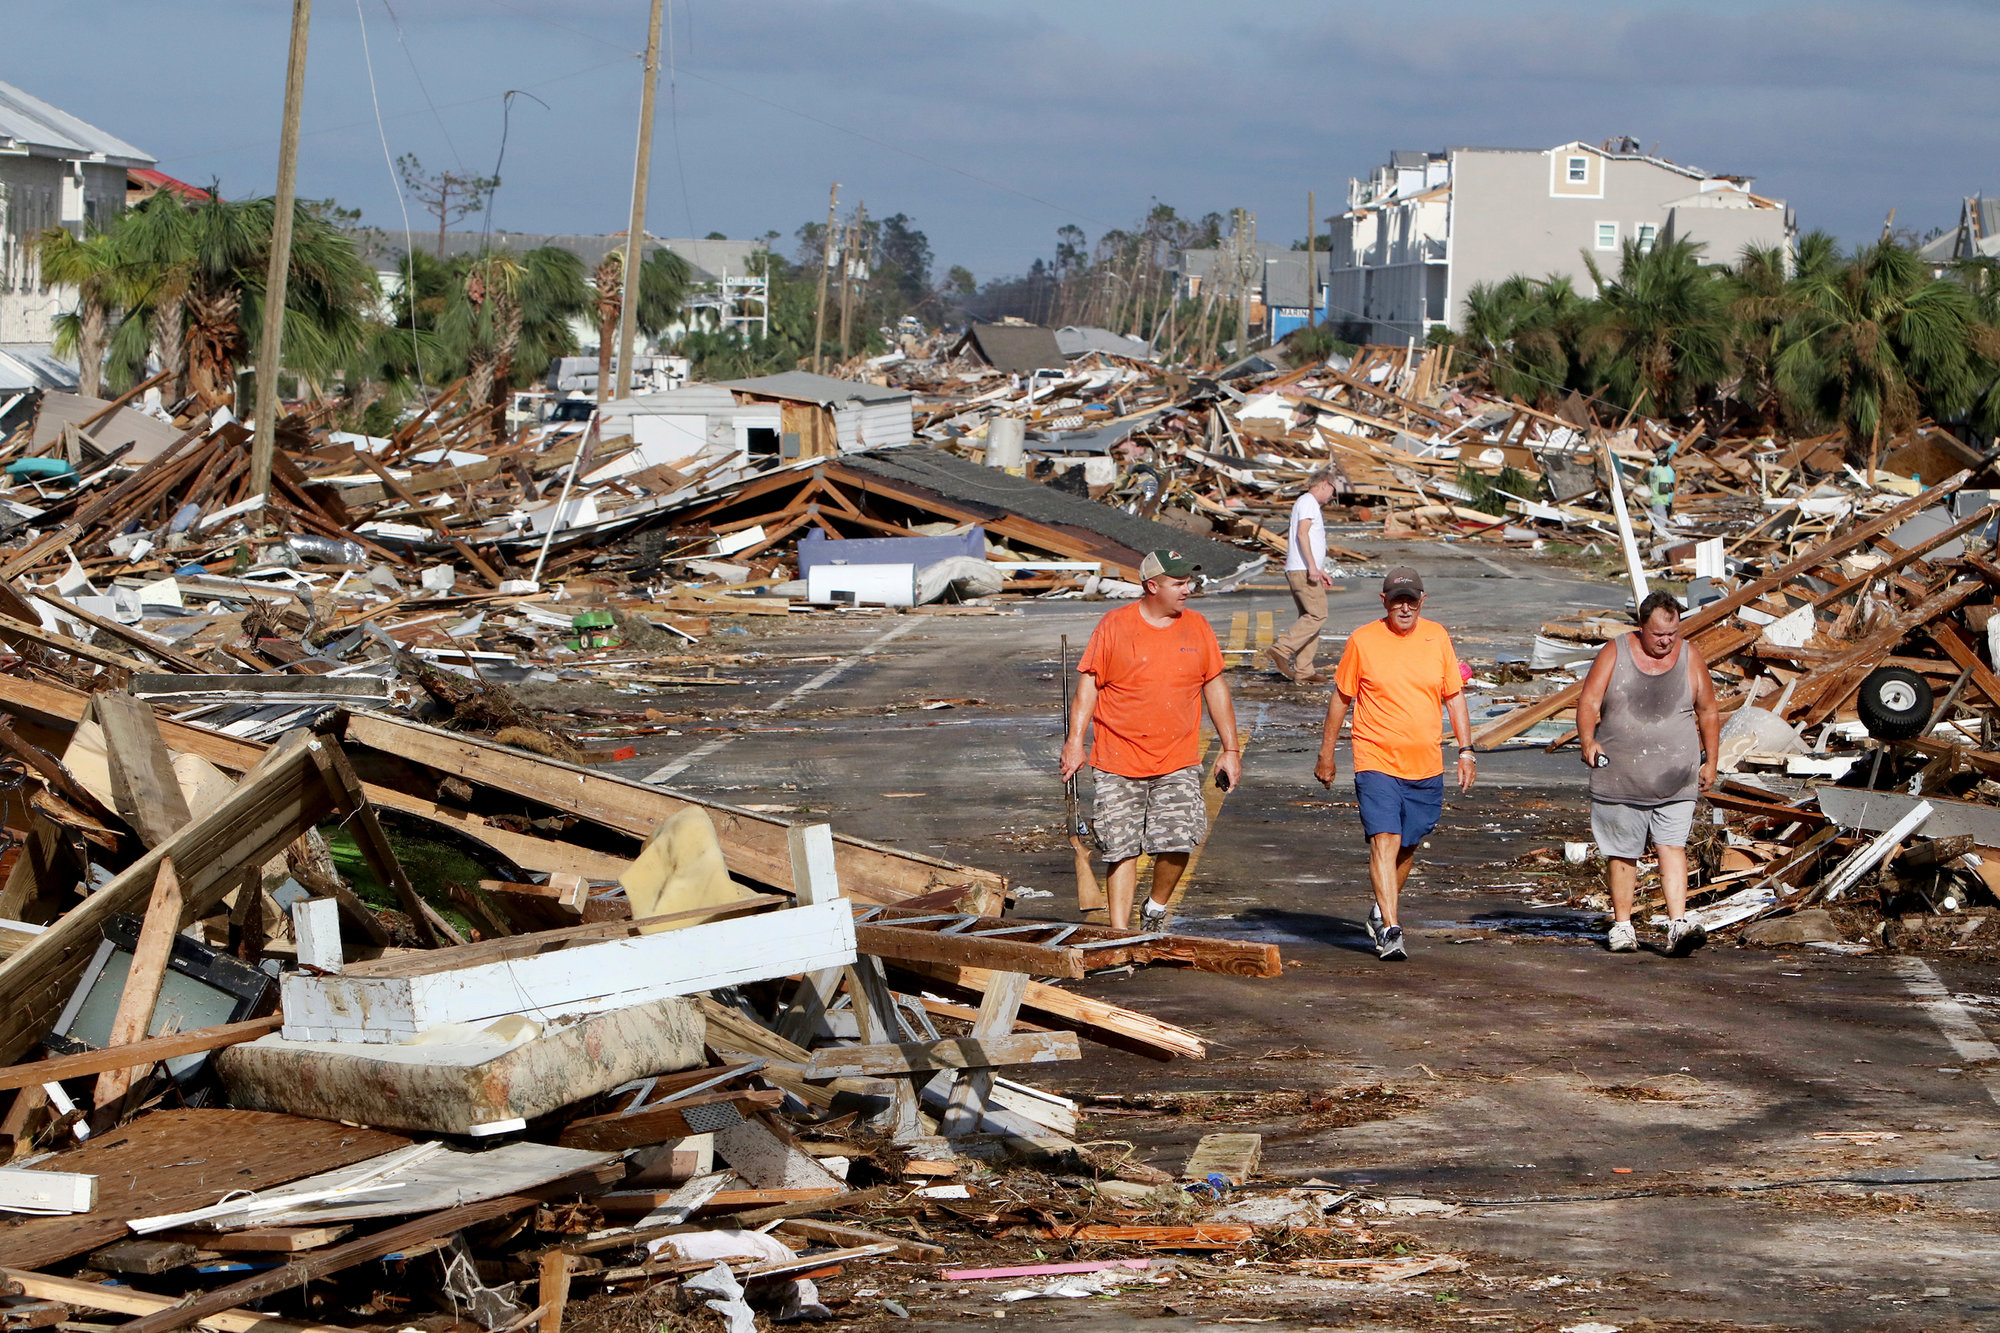 From left, Lee Cathey, 37; Al Cathey, 71; and Charles Smith, 56, survey damage in Mexico Beach, Florida, population 1,200, which lay devastated on Thursday after Hurricane Michael made landfall Wednesday in the Florida Panhandle.